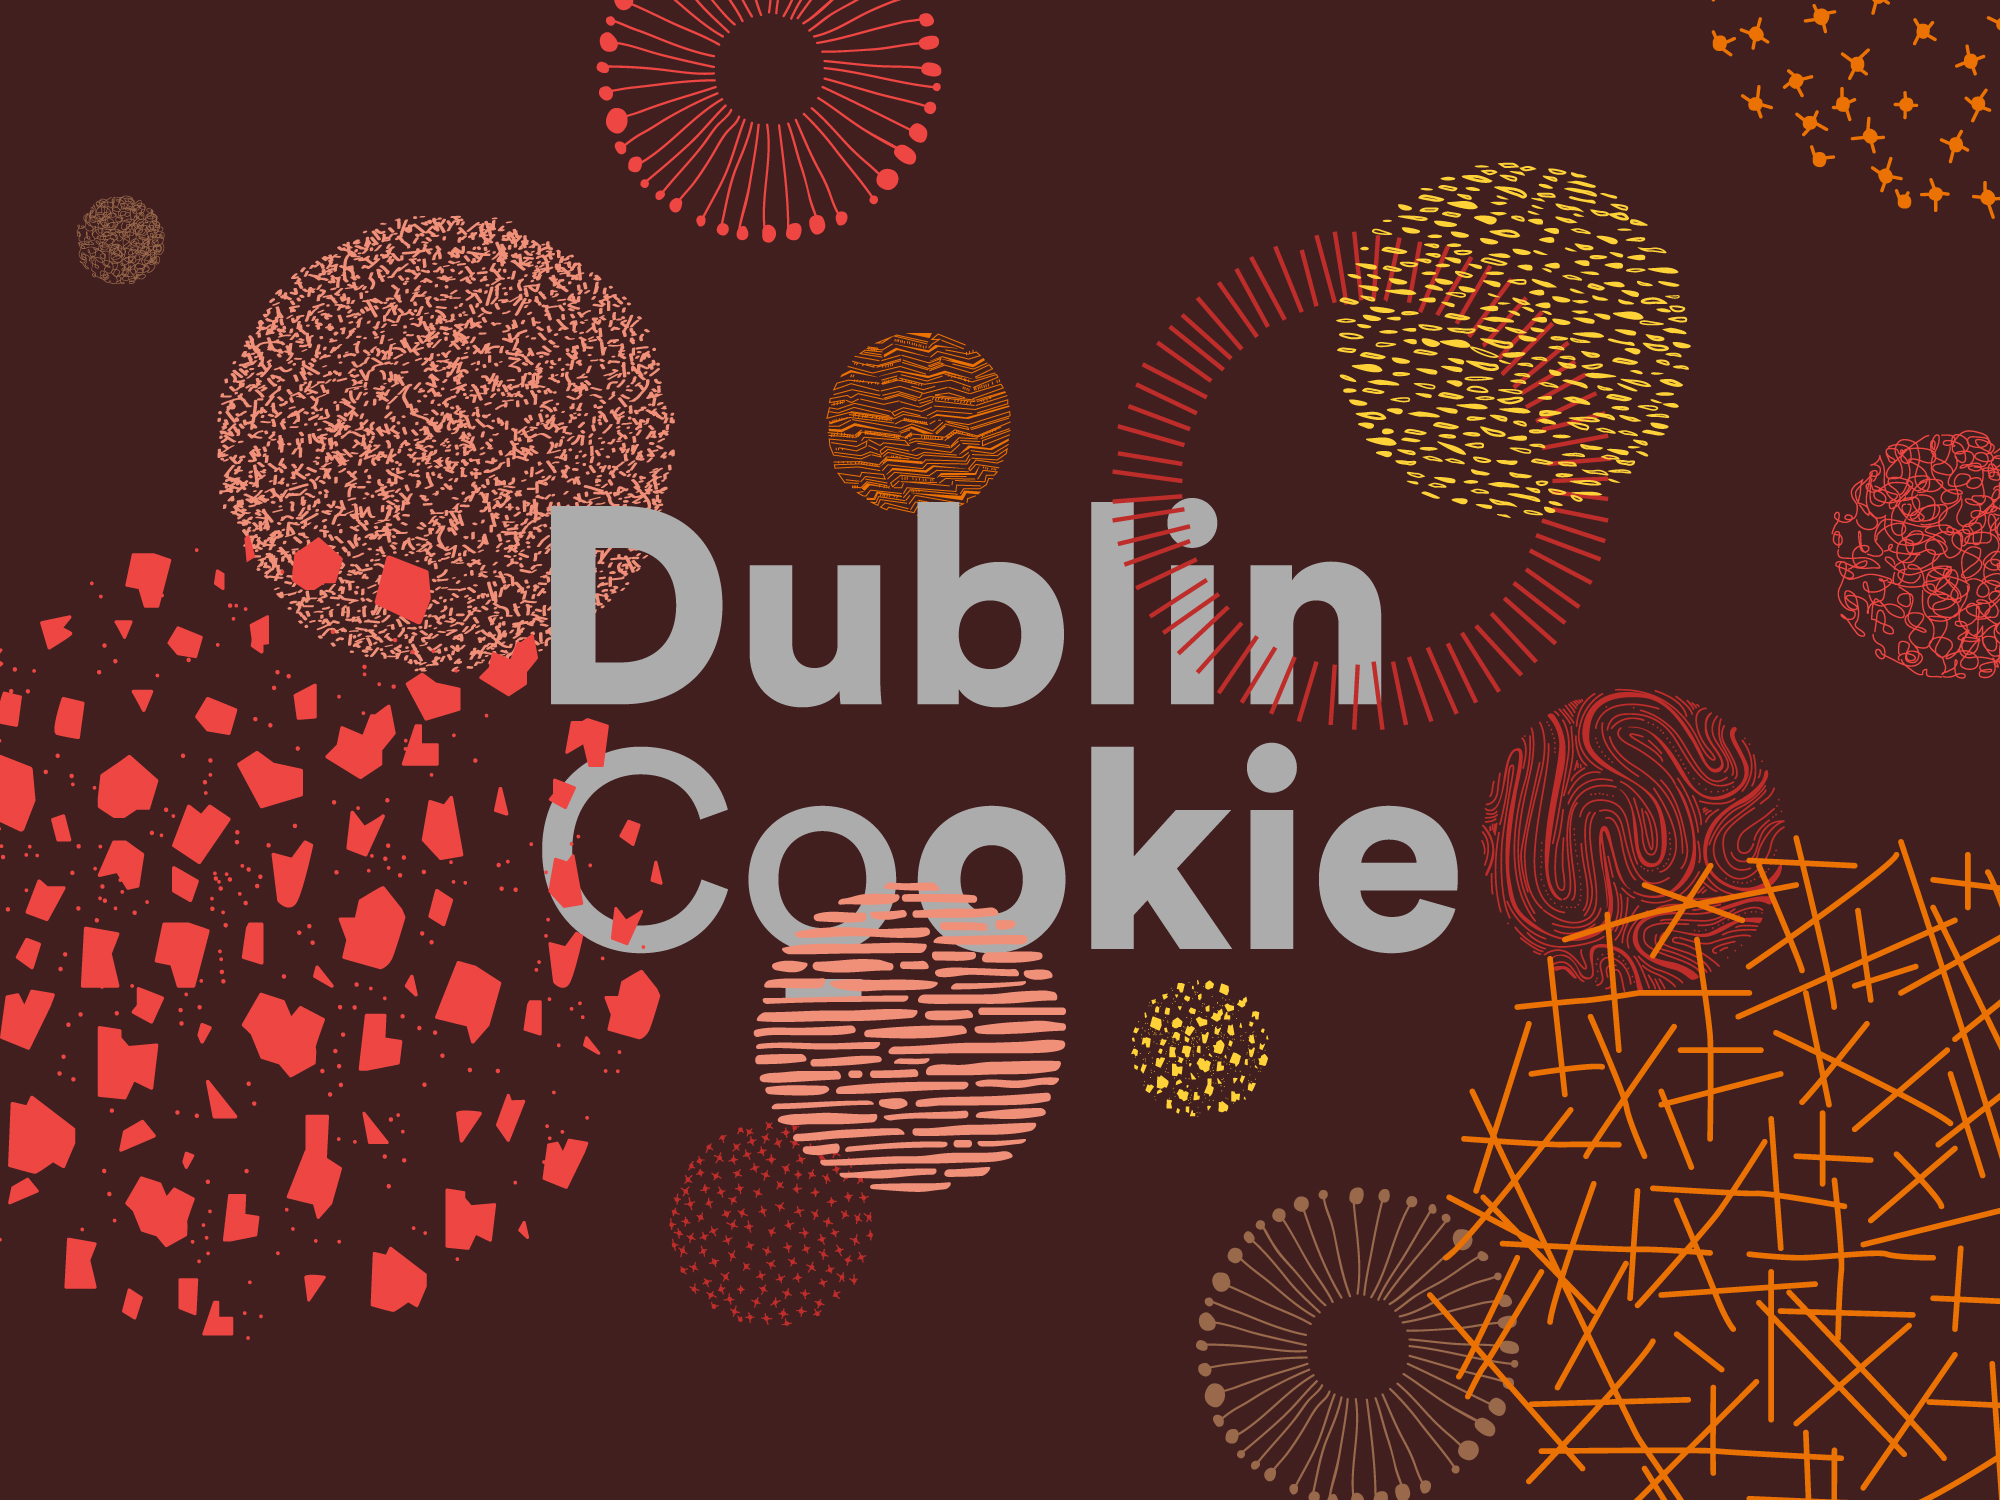 Cover image: Dublin Cookie Company Identity